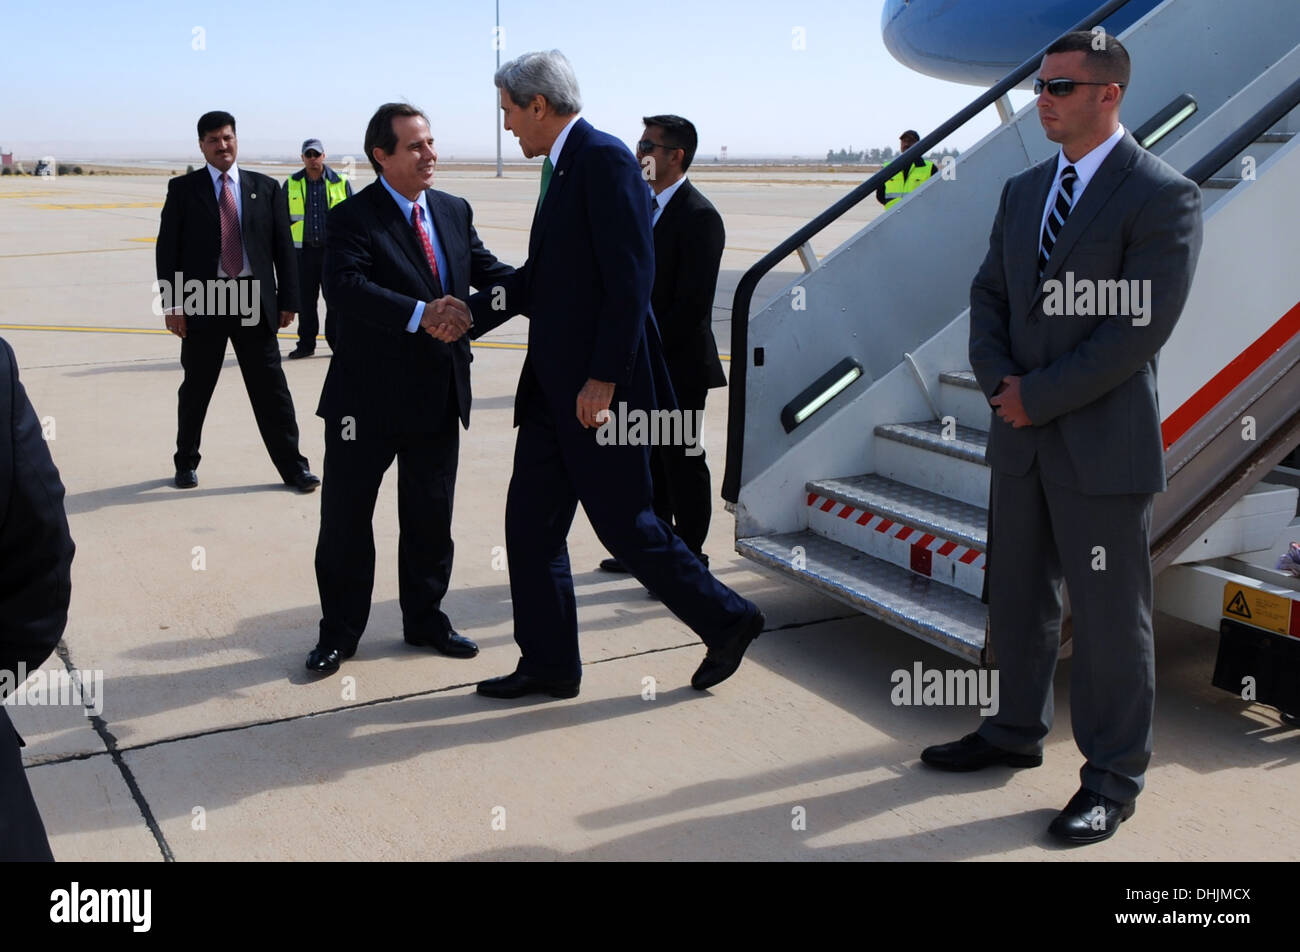 Secretary Kerry Arrives in Amman for Talks on Middle East Issues - Stock Image